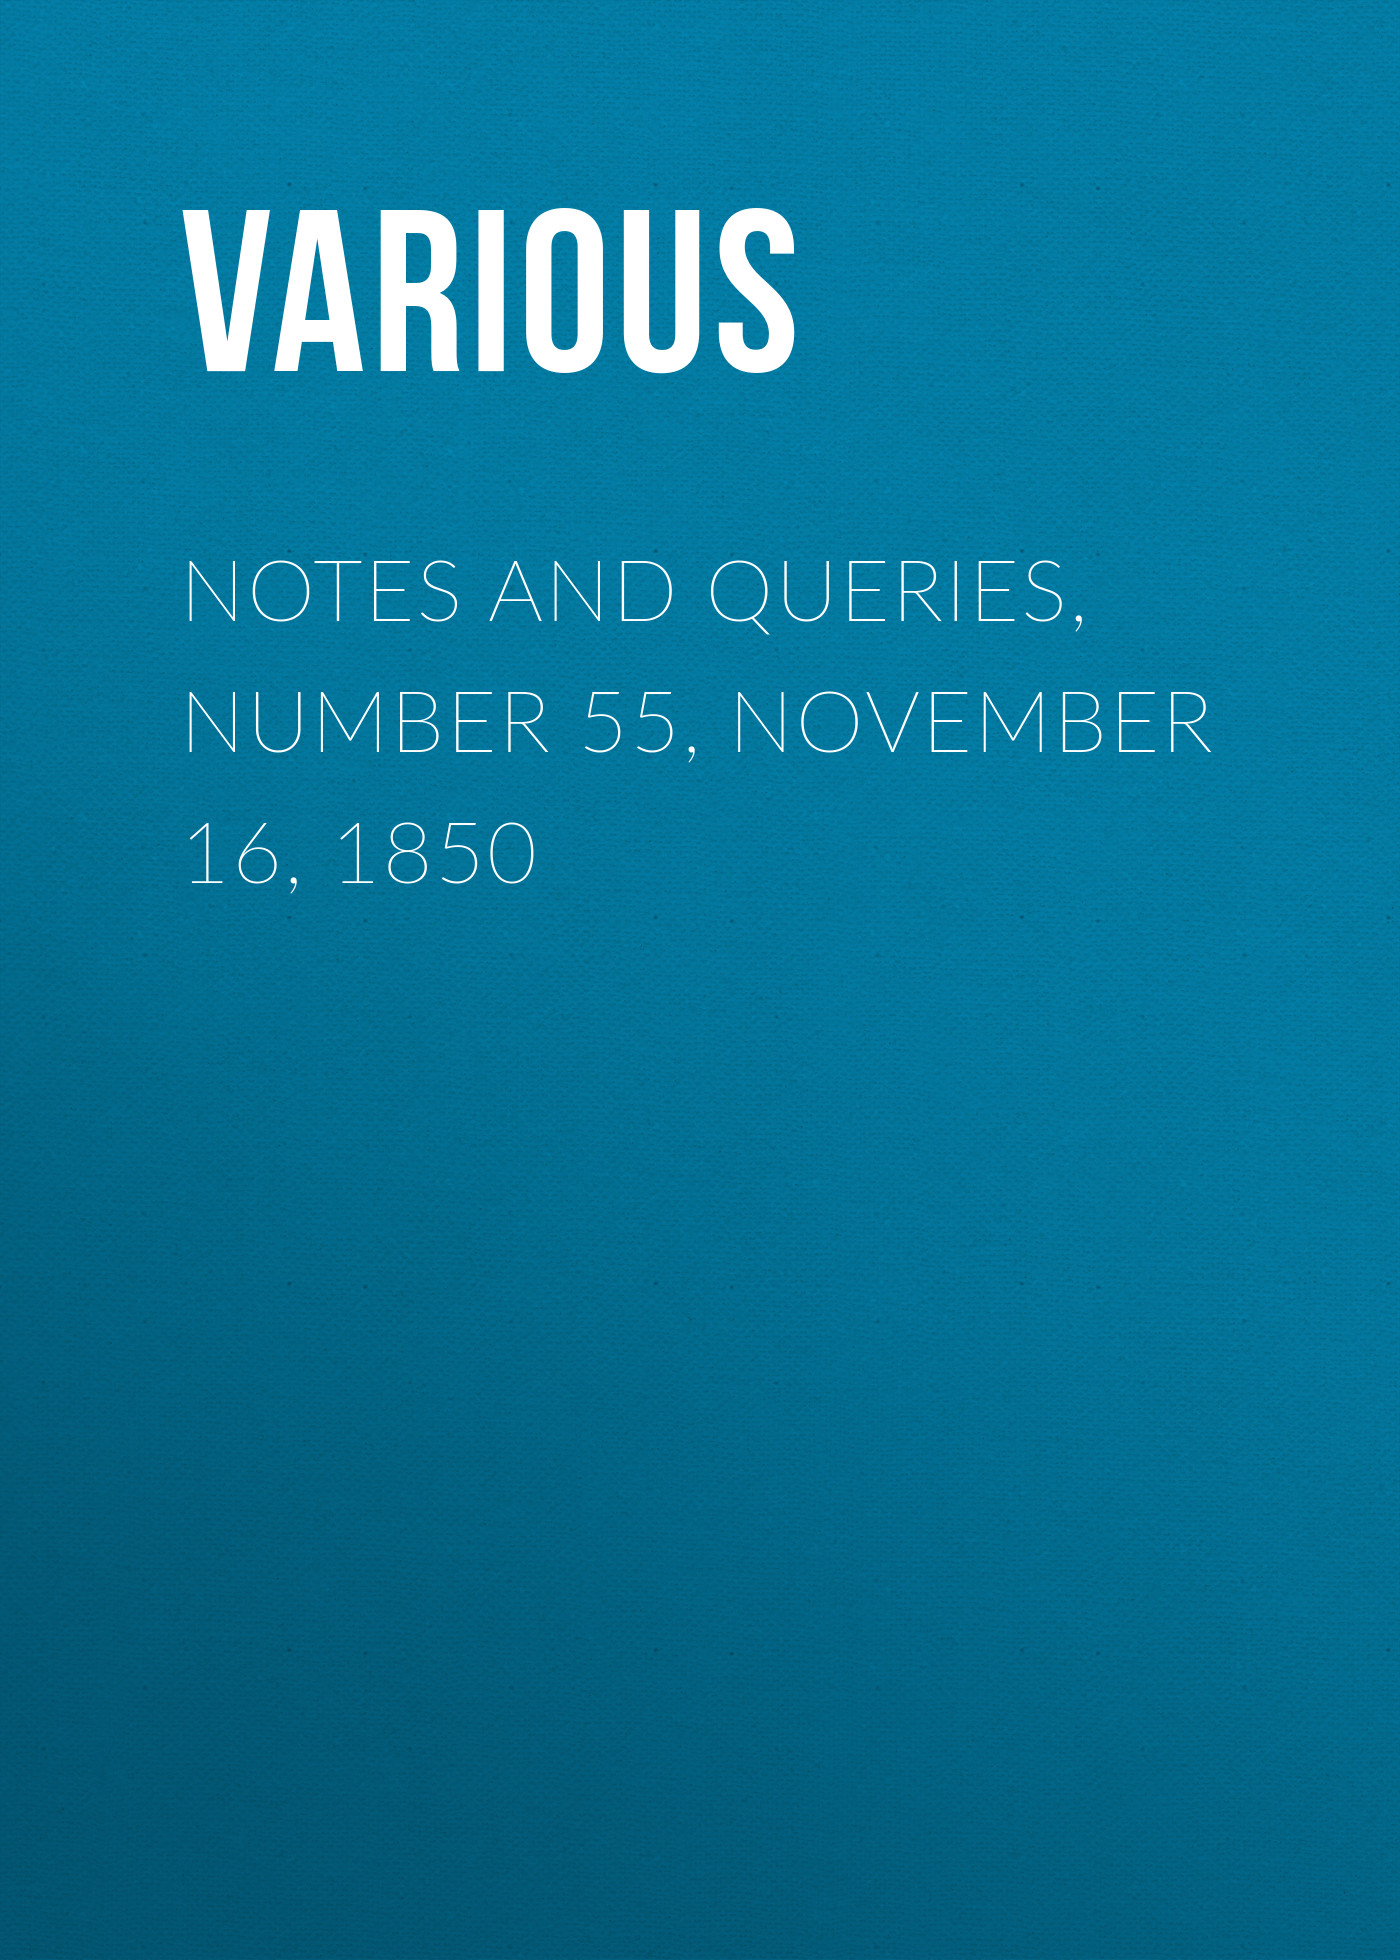 Notes and Queries, Number 55, November 16, 1850